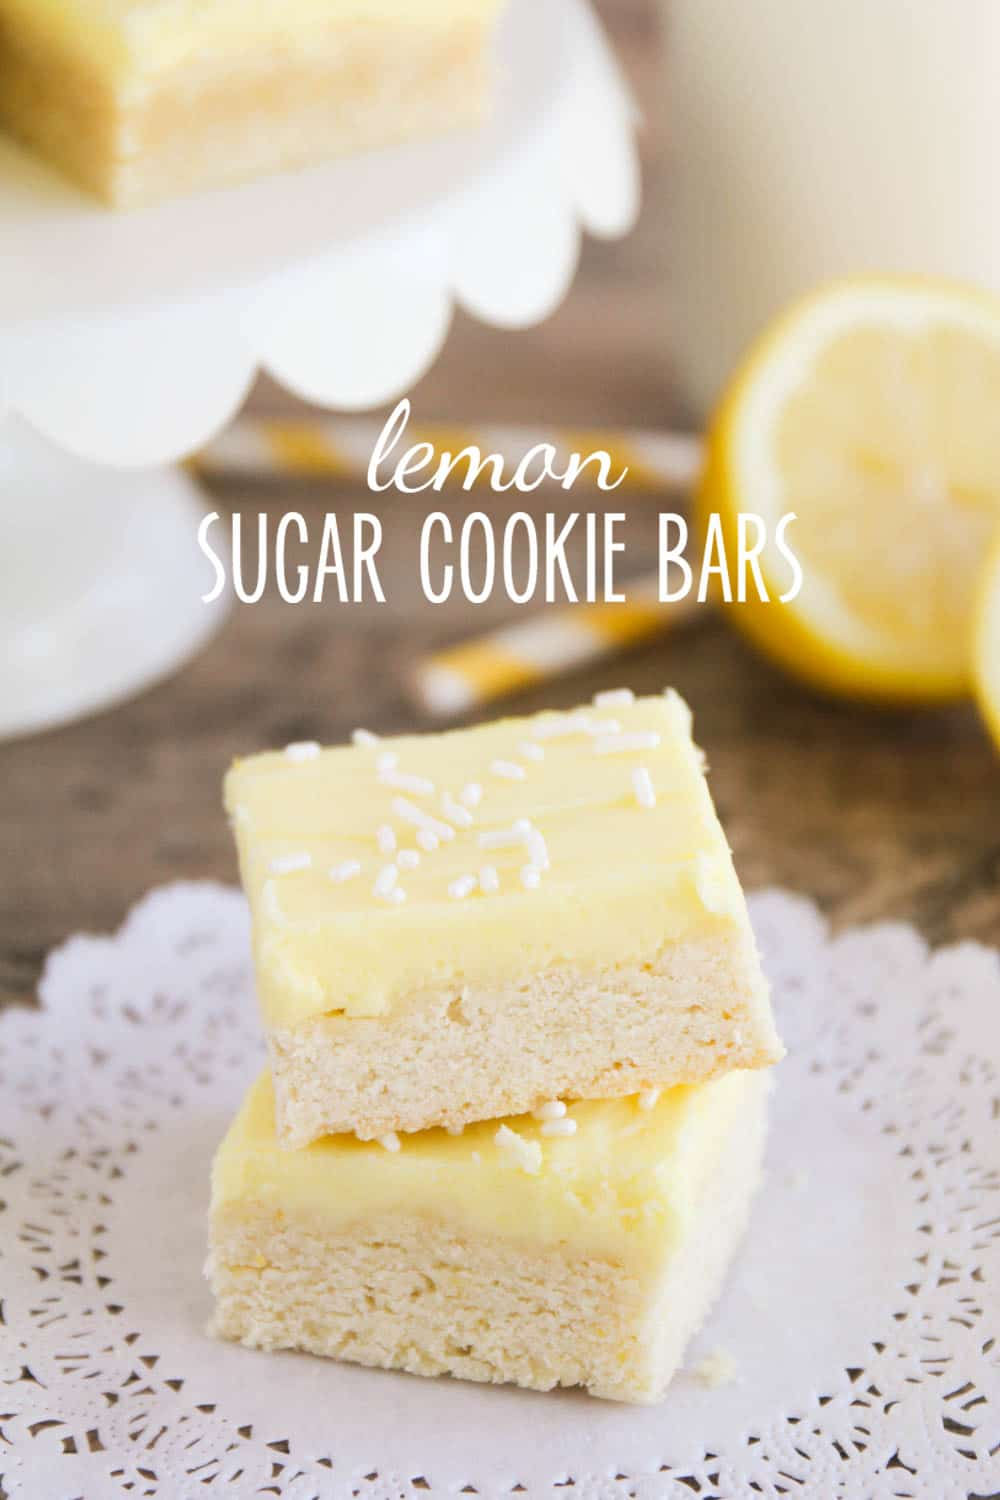 These sugar cookie lemon bars have all the deliciousness of sugar cookies, but without the rolling and cutting.  This tasty lemon bars recipe is topped with a to-die-for lemon buttercream! #dessert #dessertrecipes #easyrecipe #lemon #sugarcookies #recipeideas  via @somewhatsimple